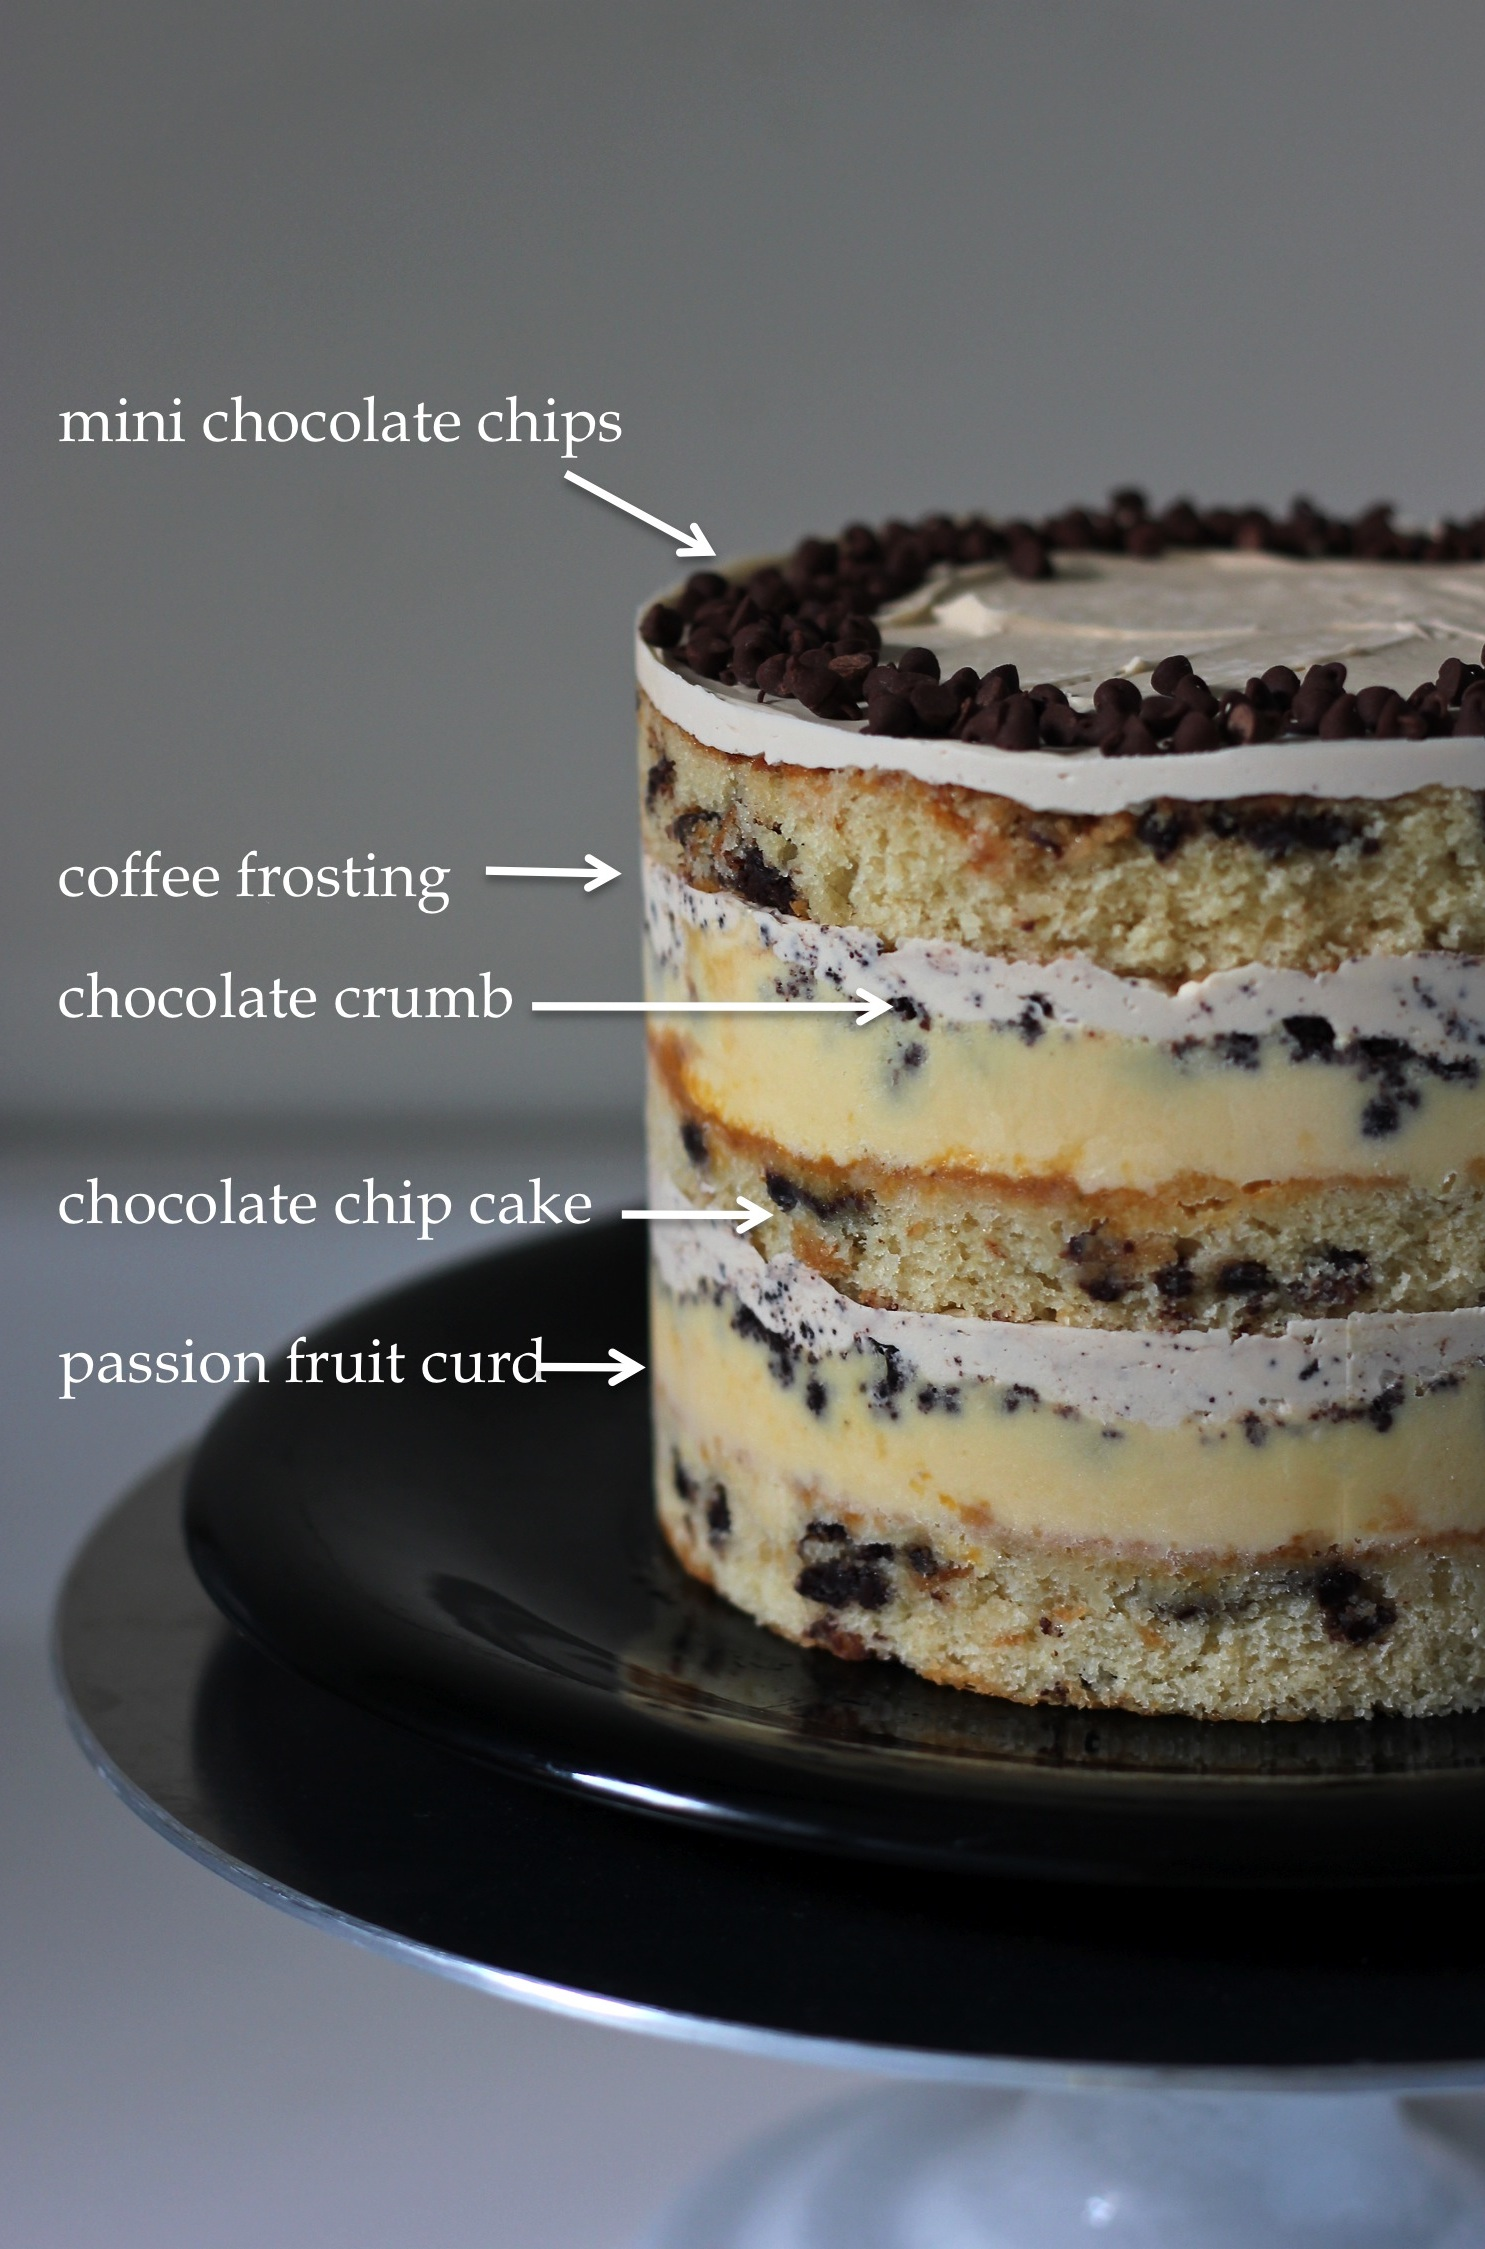 chocolatechipcake8